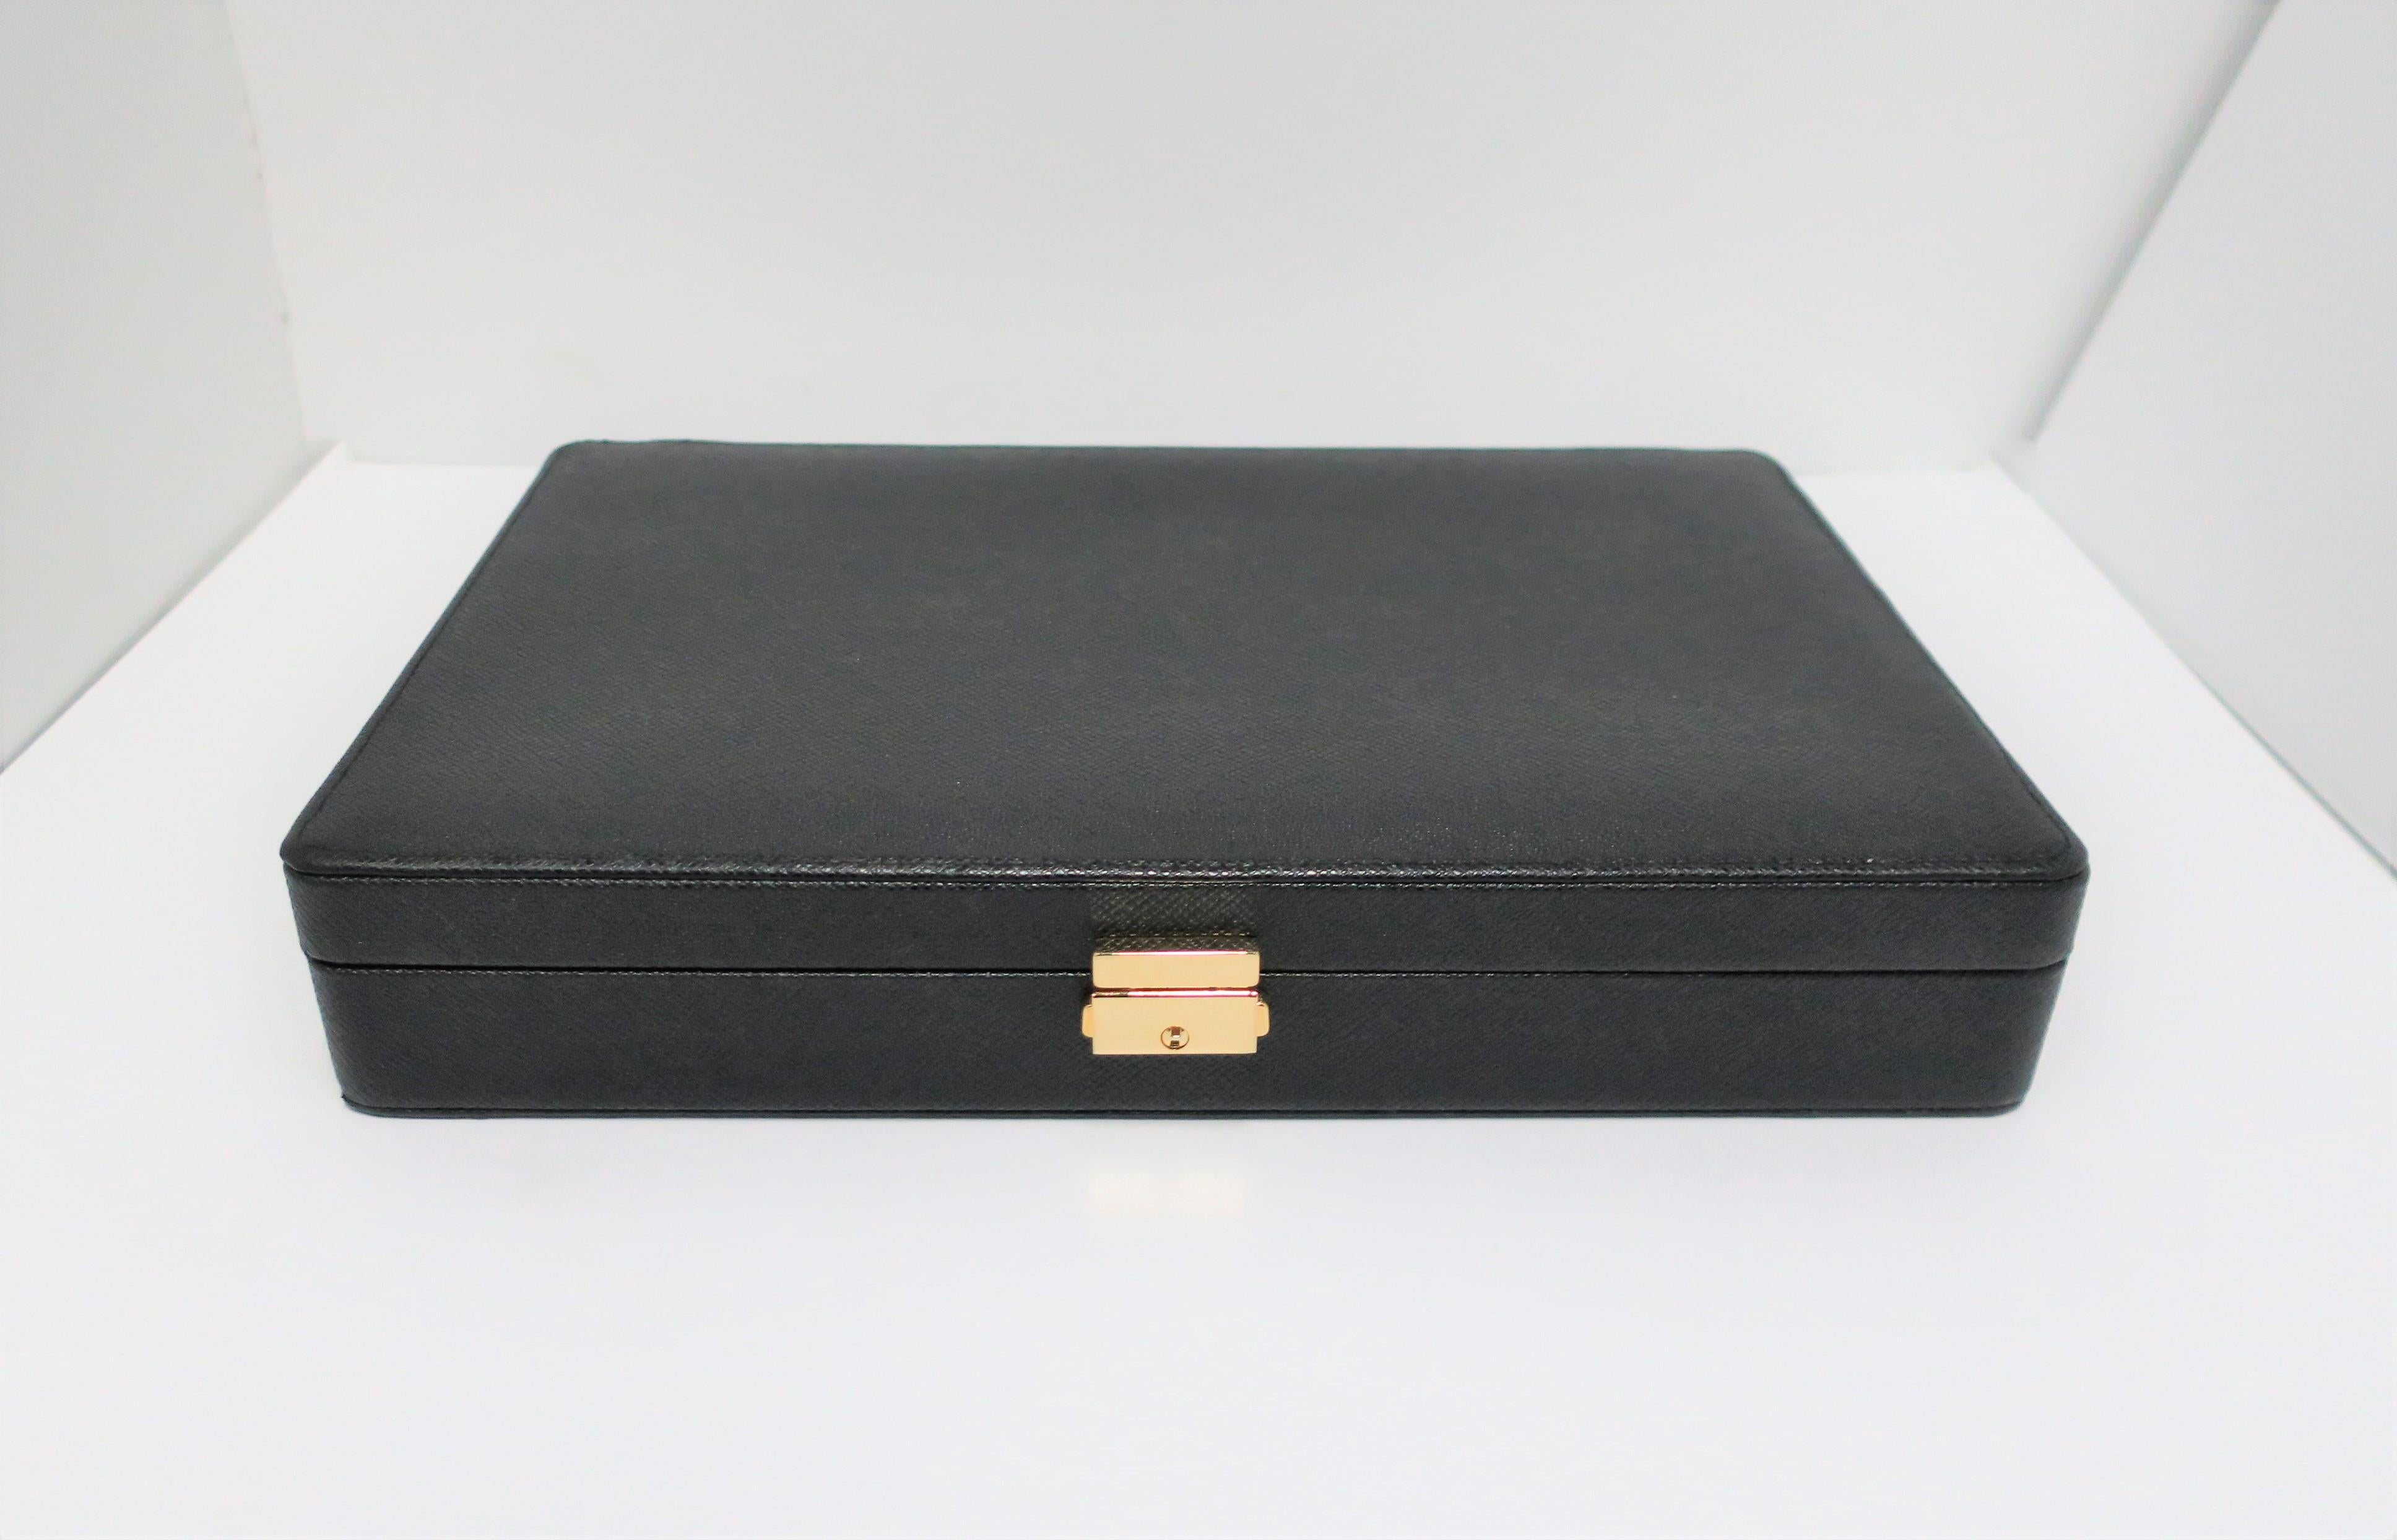 6c4303f7b5fe Black Leather Earring or Cufflink Jewelry Box For Sale at 1stdibs